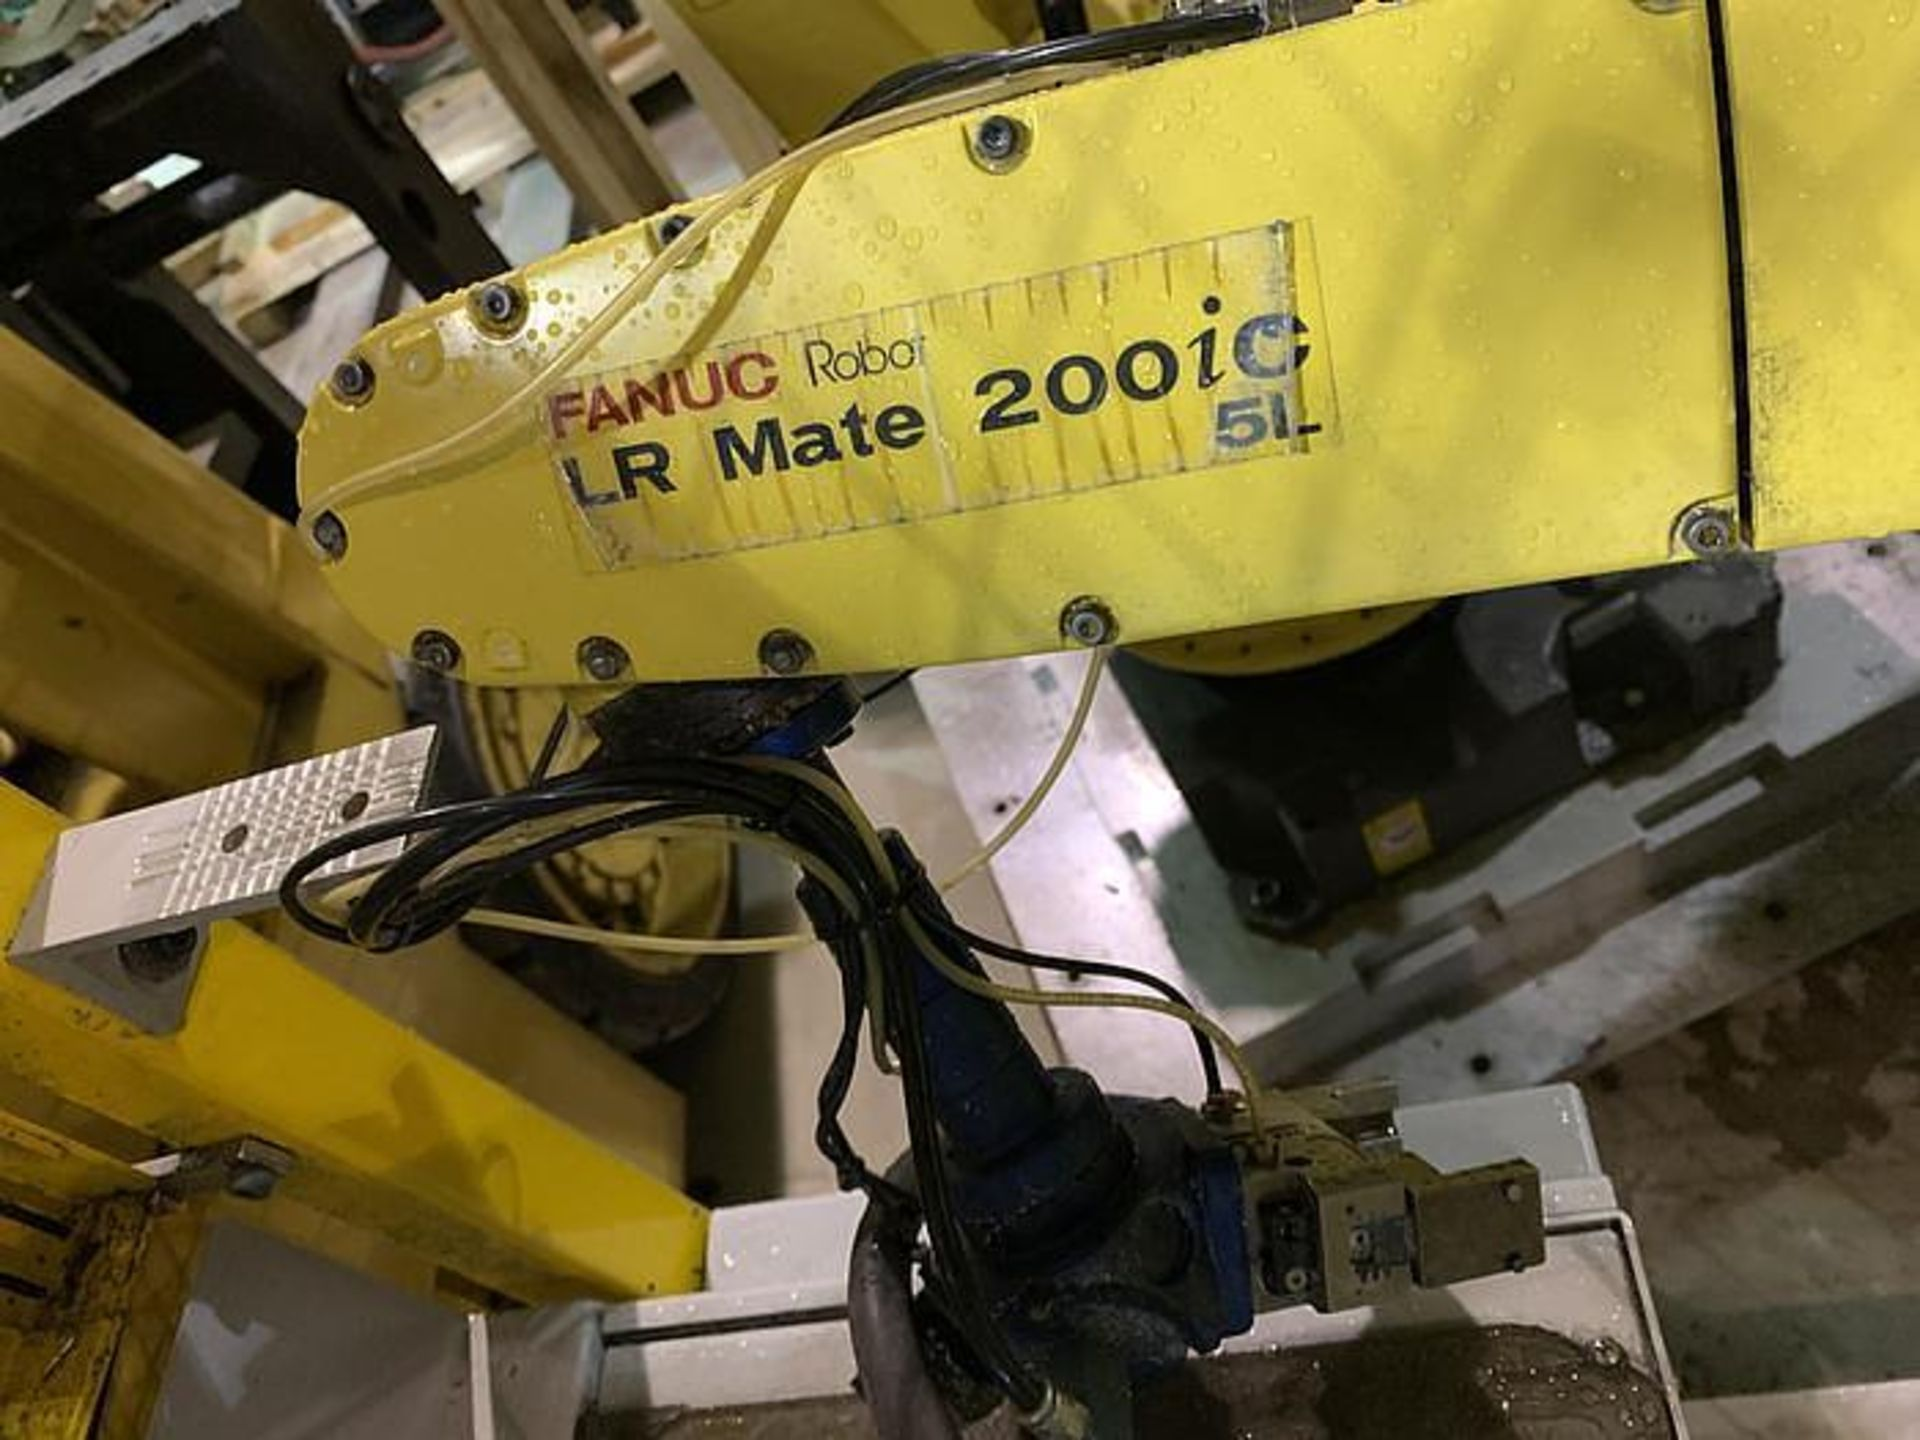 FANUC LR MATE 200iC/5L 6 AXIS CNC ROBOT WITH R30iA CONTROLLER, YEAR 2011, SN F113130 - Image 4 of 6